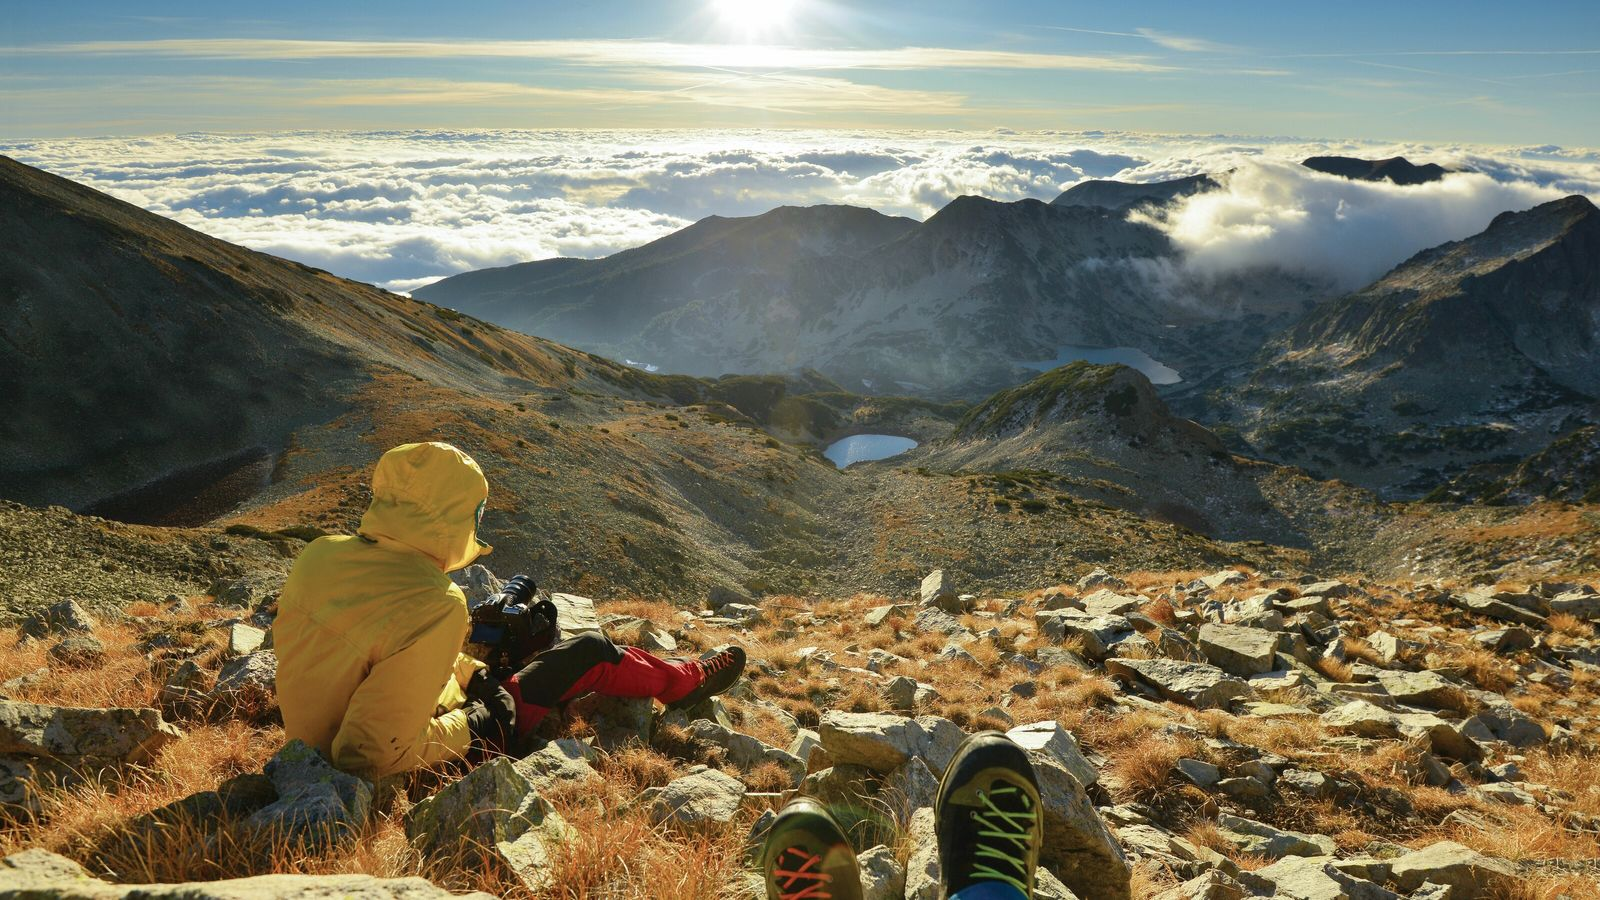 Autumn hiking in Pirin National Park, just a short drive from the town of Bansko.